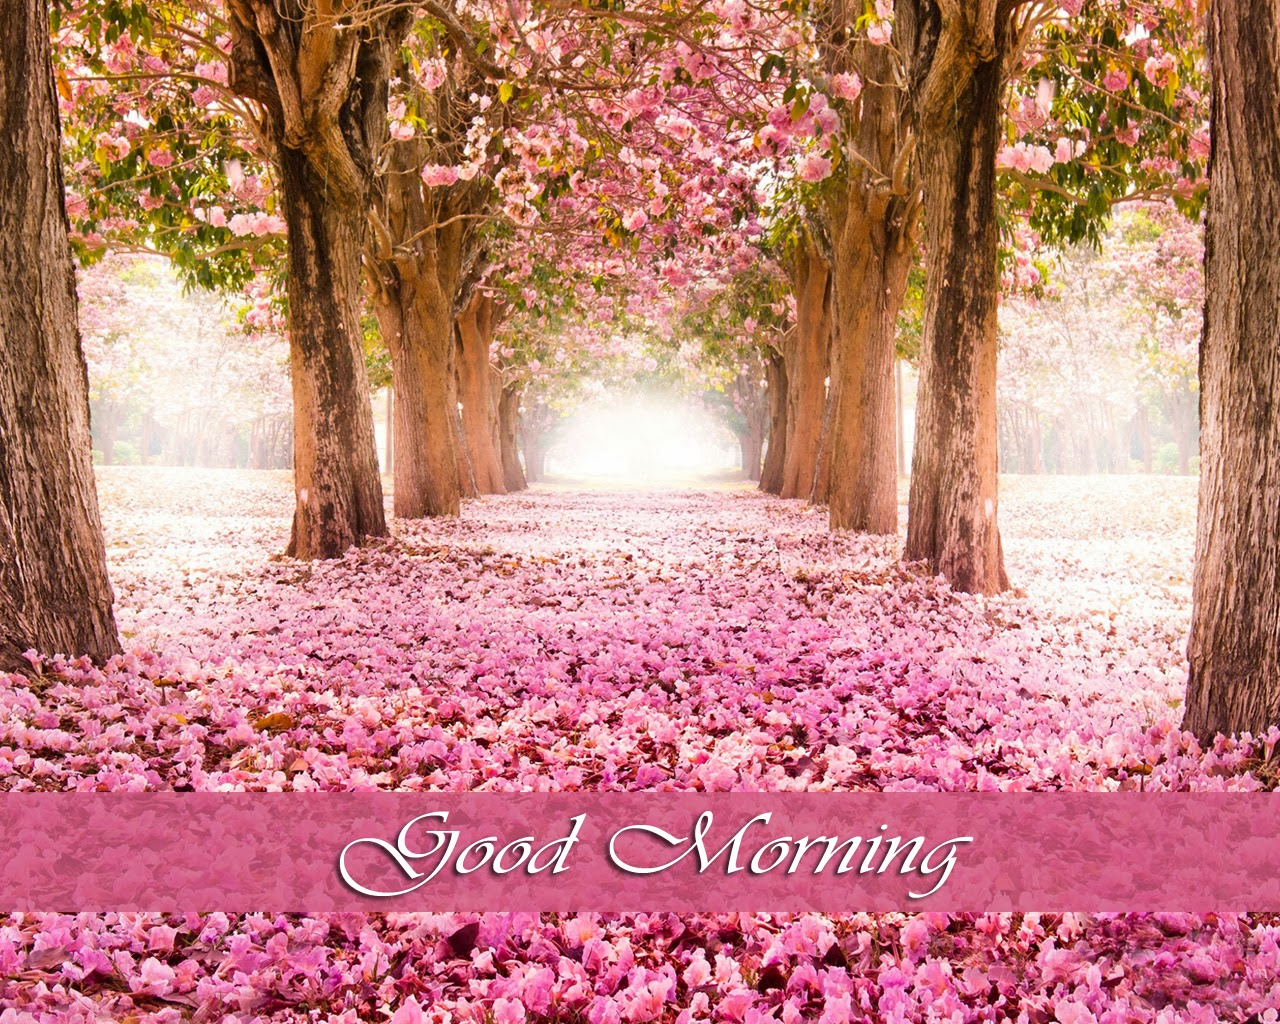 HD: Download High Resolution Wallpapers of Beautiful Morning